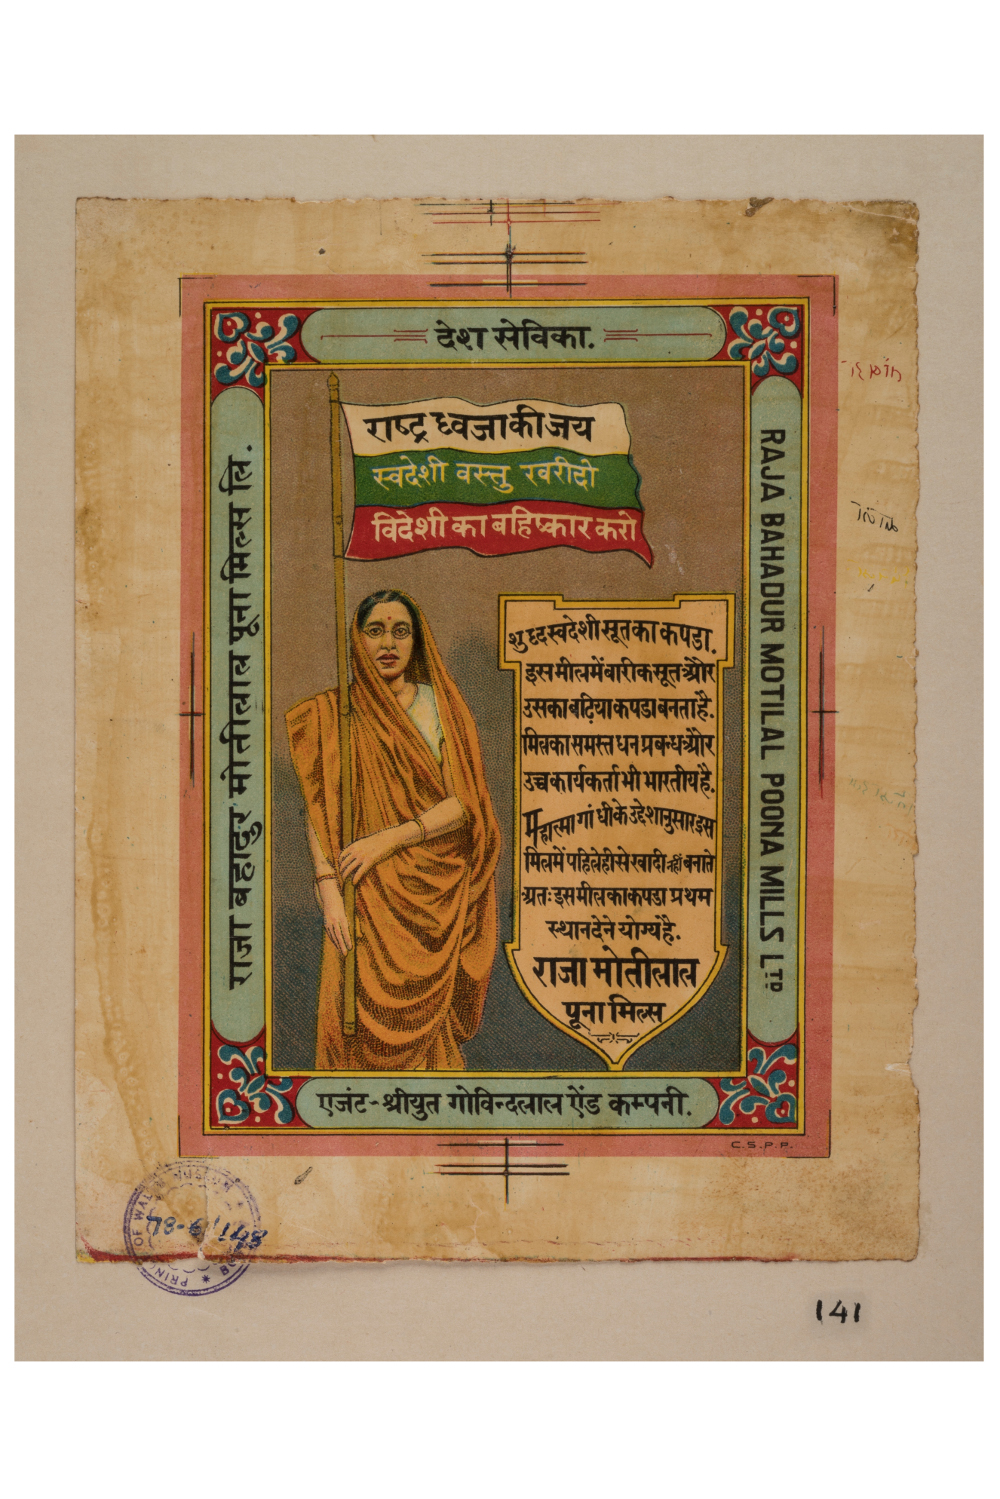 Desh Sevika - PaperEarly 20th centuryRaja Bahadur Motilal Poona Mills Ltd.CSMVS, MumbaiIn the early twentieth century, hundreds of new textile mills began to emerge in India. This advertisement depicts a new Indian woman. She is politically minded and stands beside a label that states that 'the financier and owners of this mill are Indian…and that it operates as per Mahatma Gandhi's directive', clearly linking industrialisation with the project of nationalism.